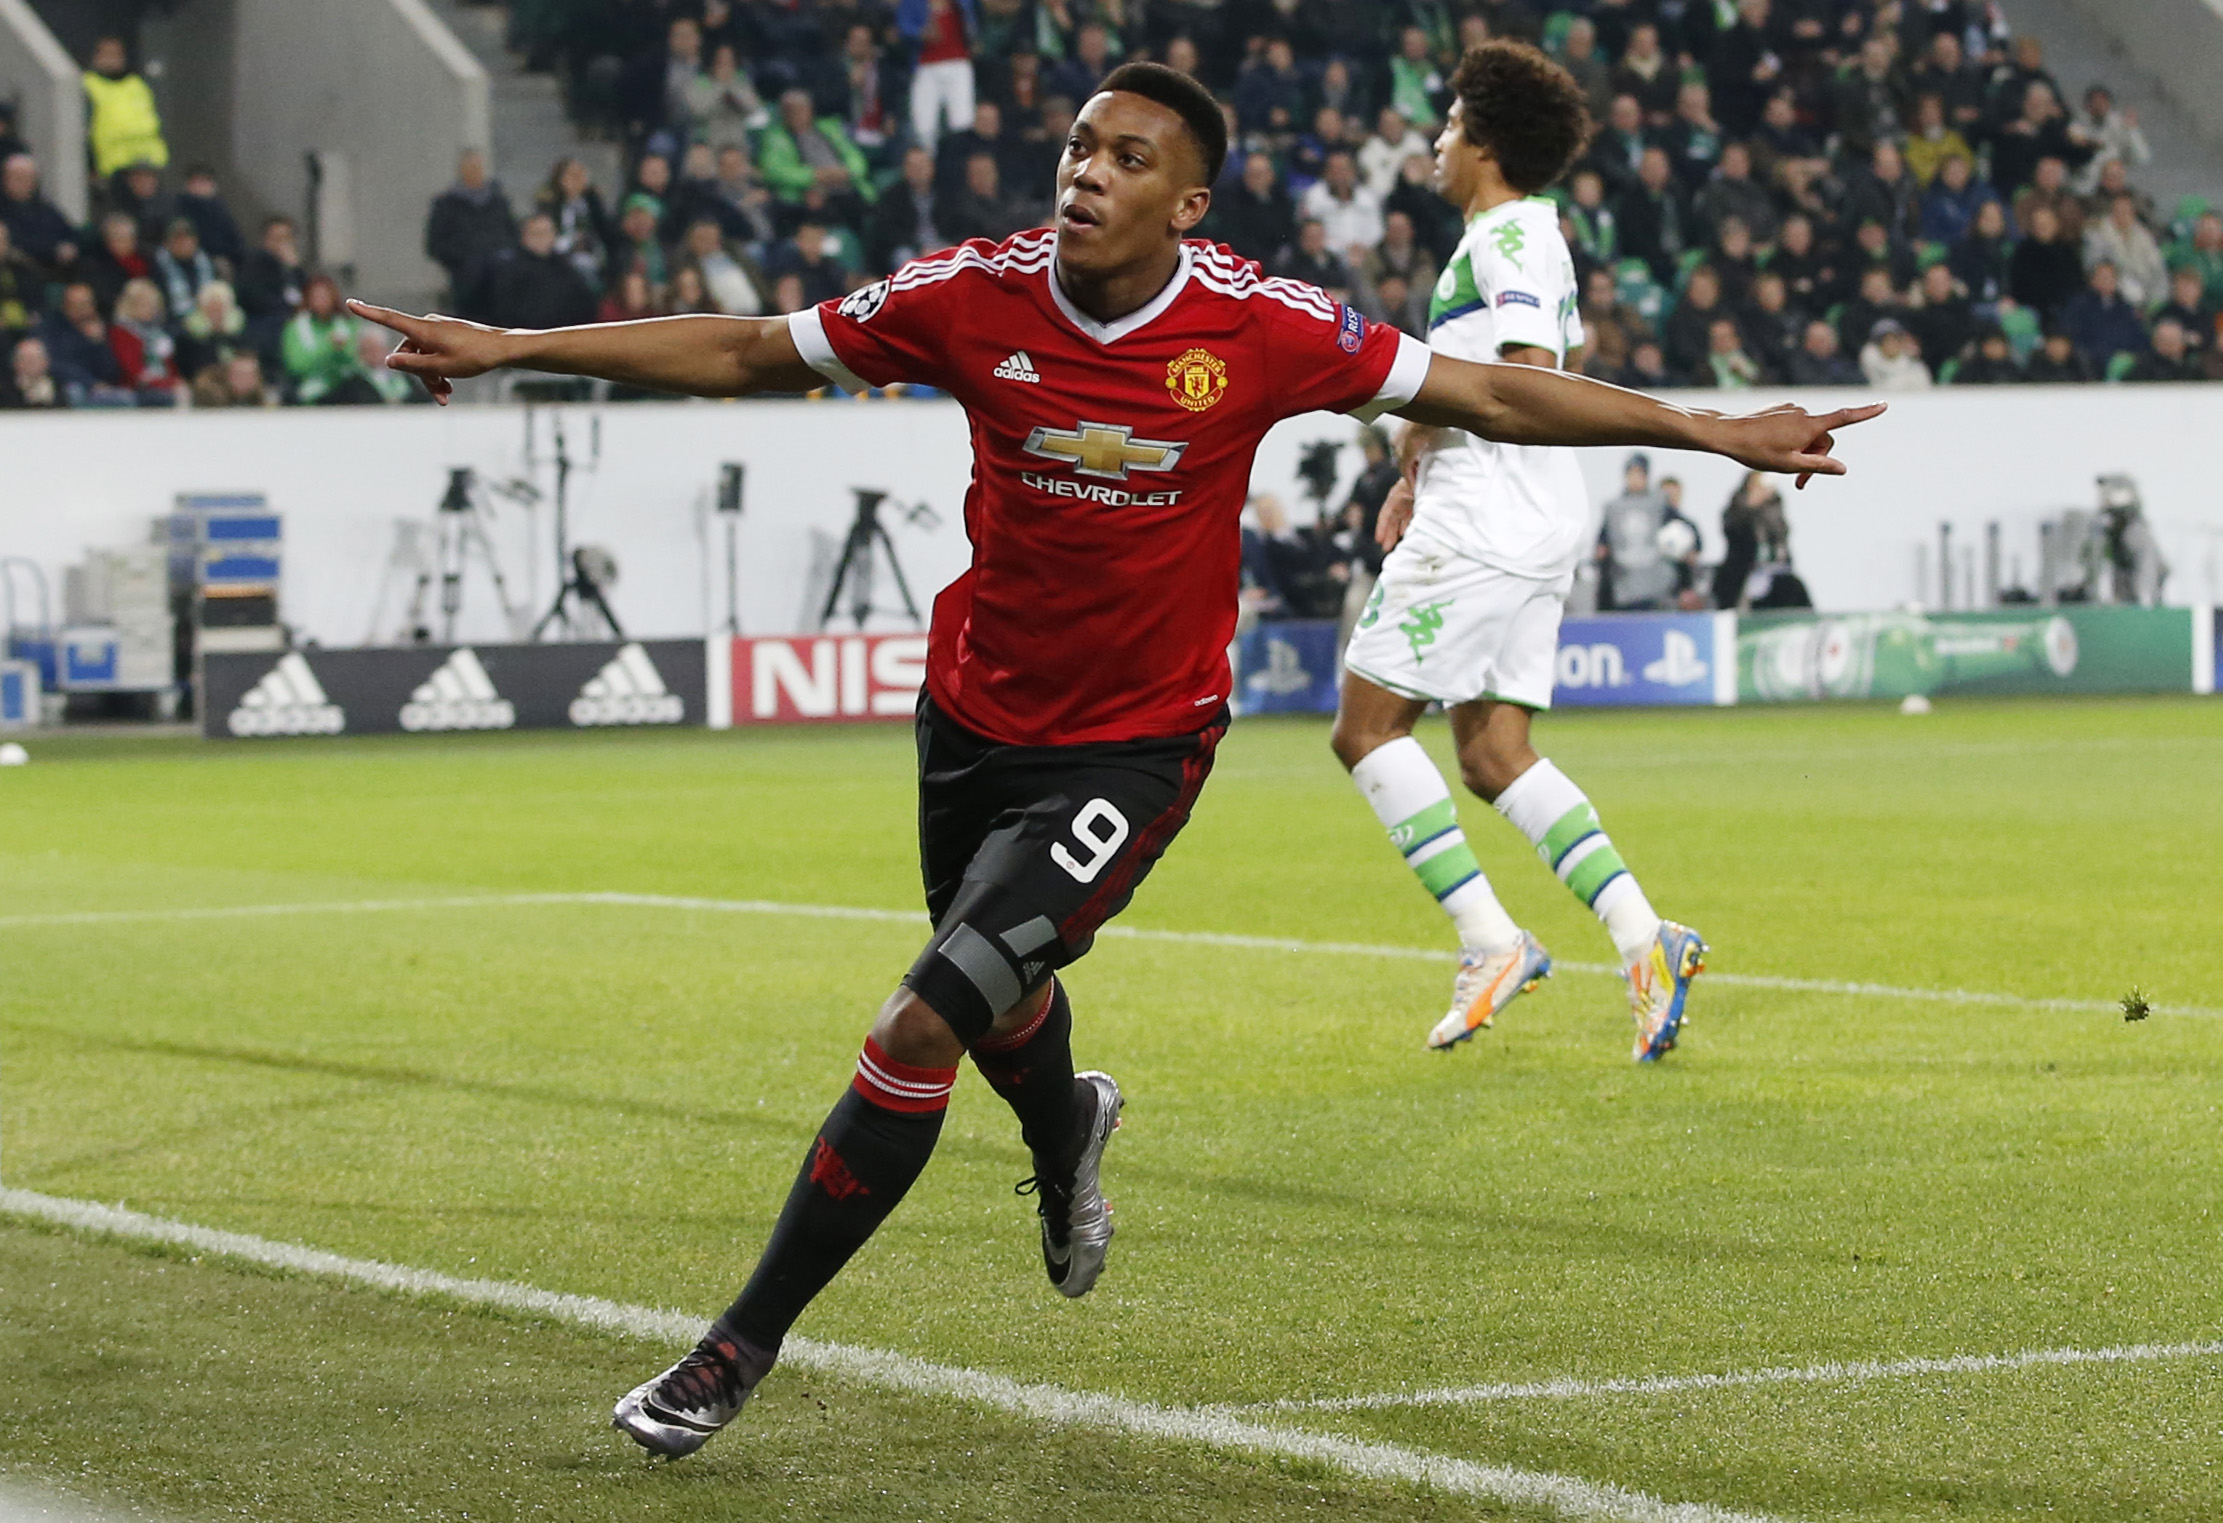 Anthony Martial celebrates after scoring the first goal for Manchester United against Wolfsburg at Volkswagen-Arena on Tuesday, December 8, 2015. Photo: Reuters